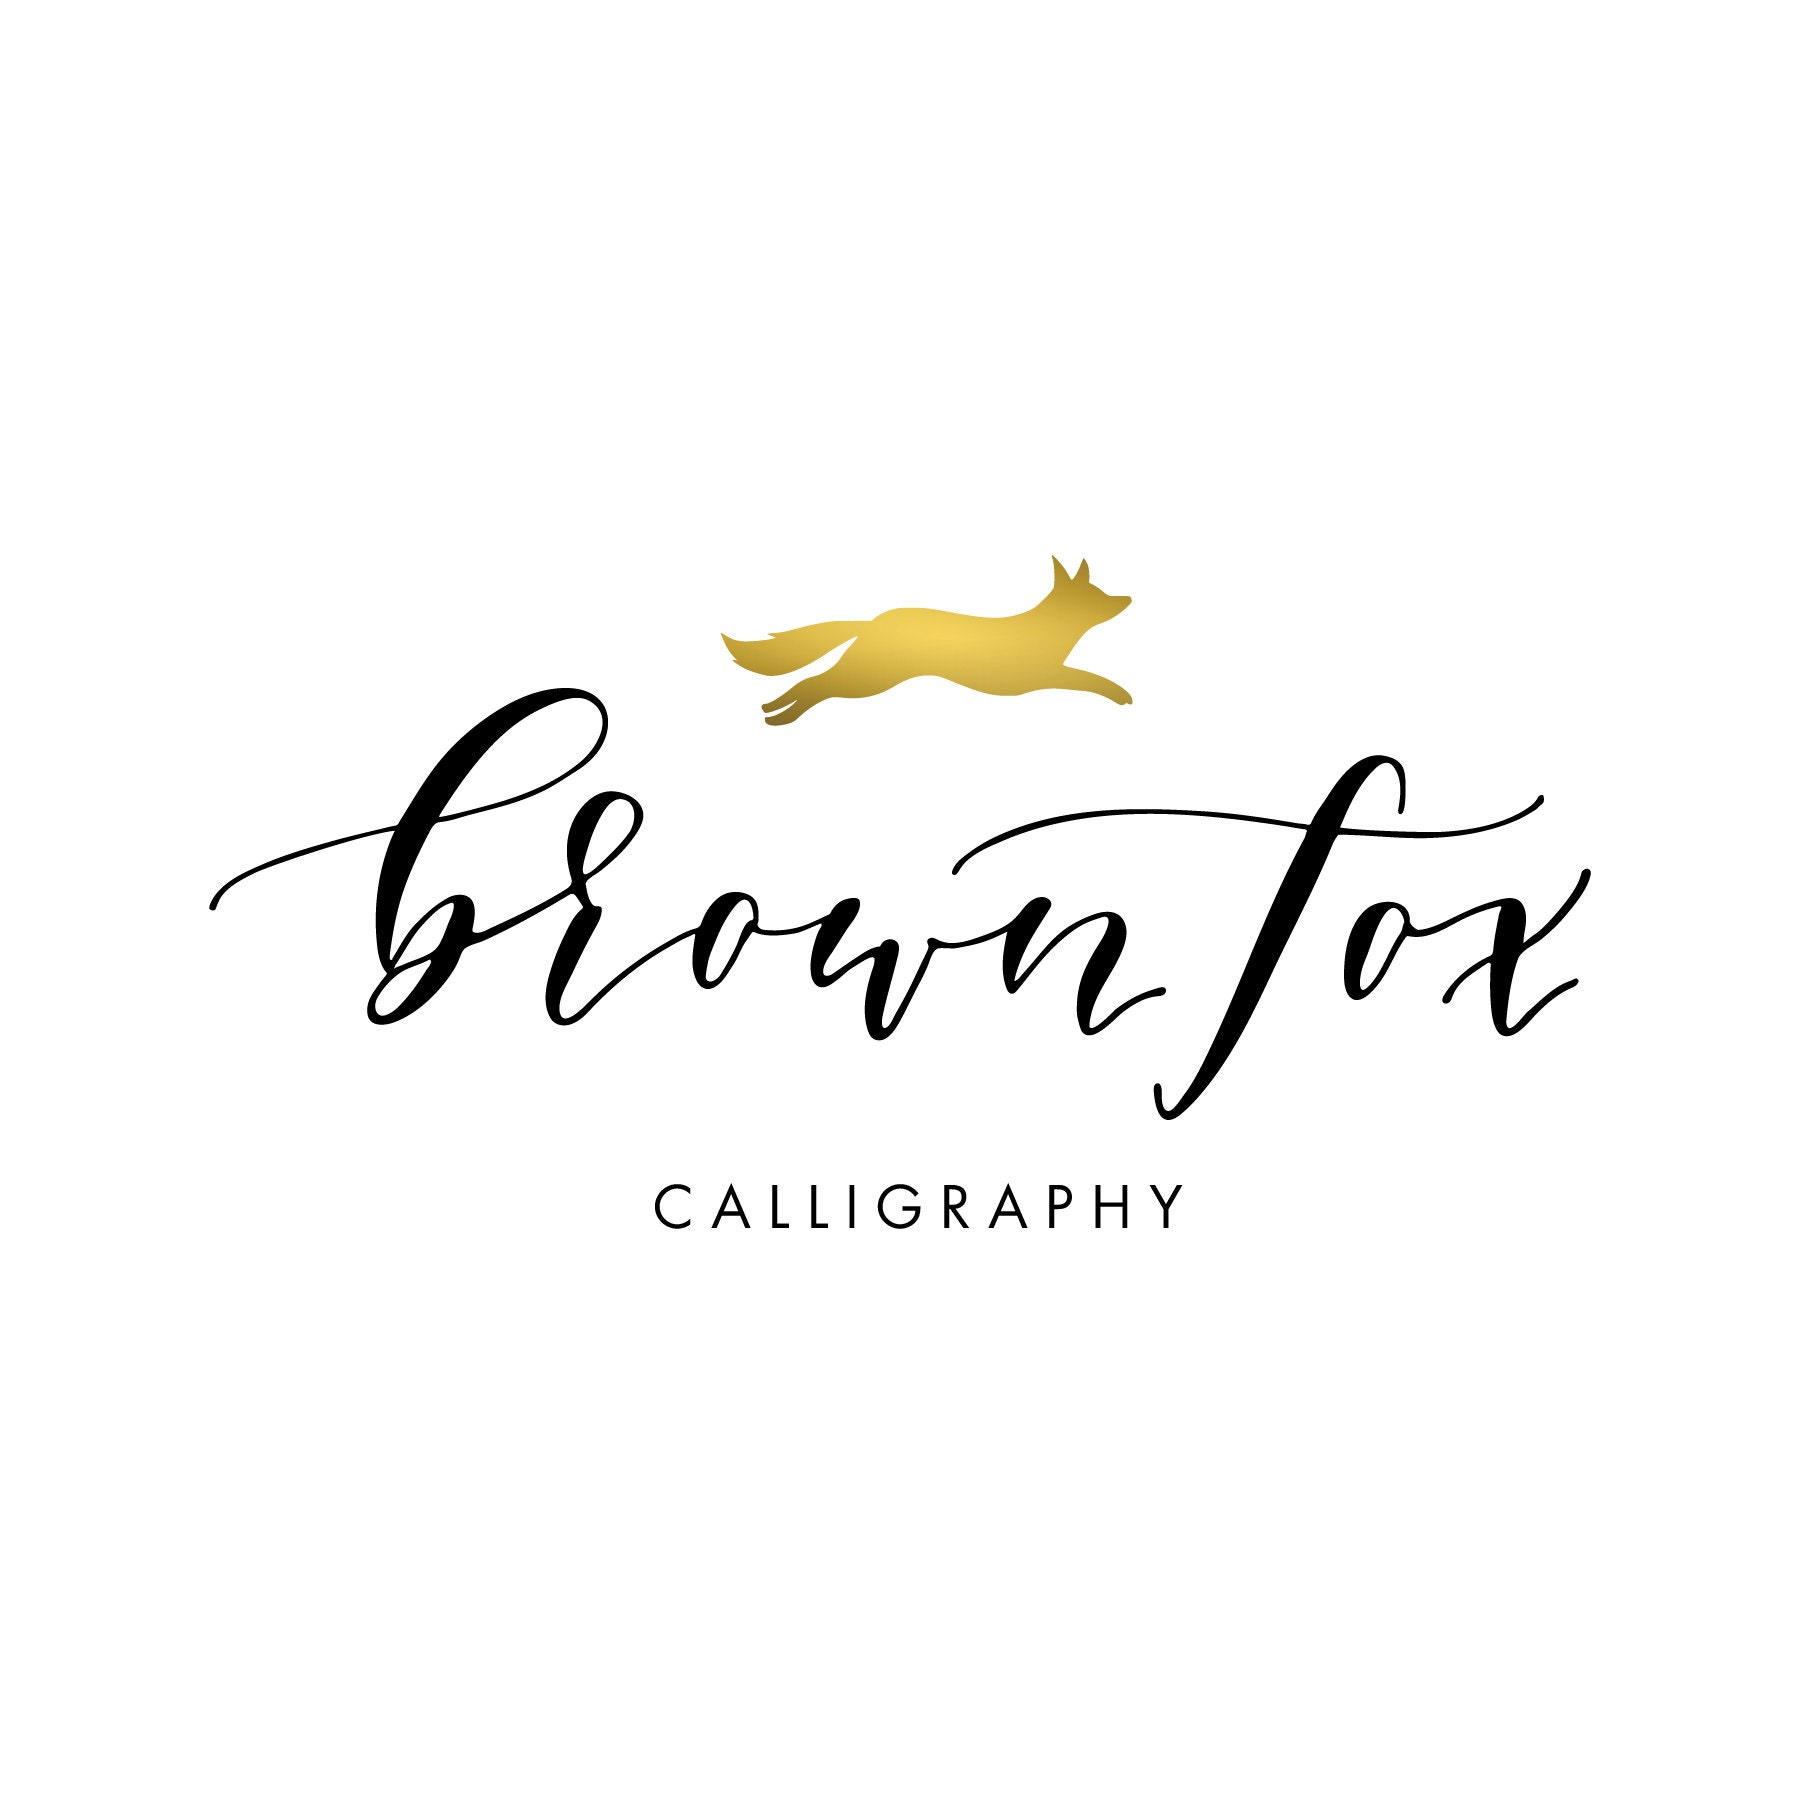 Brown Fox Calligraphy And Design By Brownfoxcalligraphy